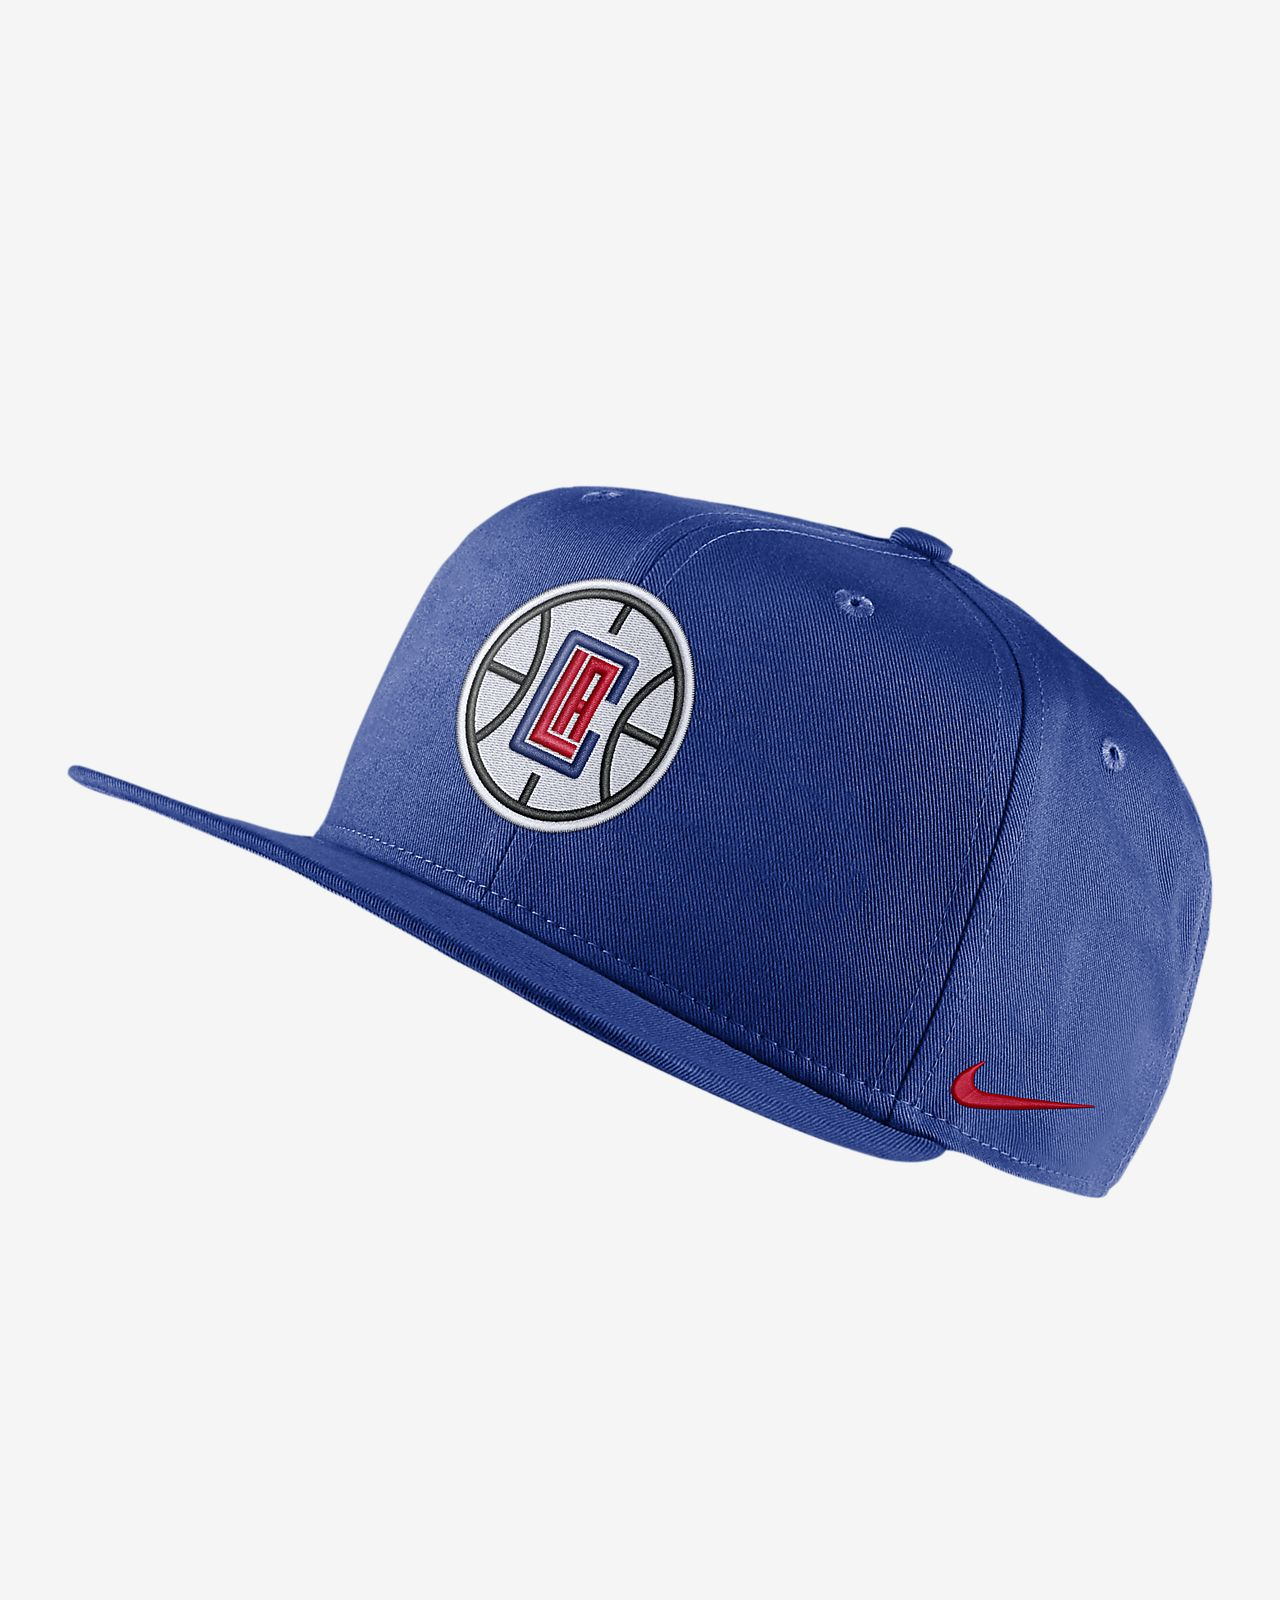 LA Clippers Nike Pro NBA-caps